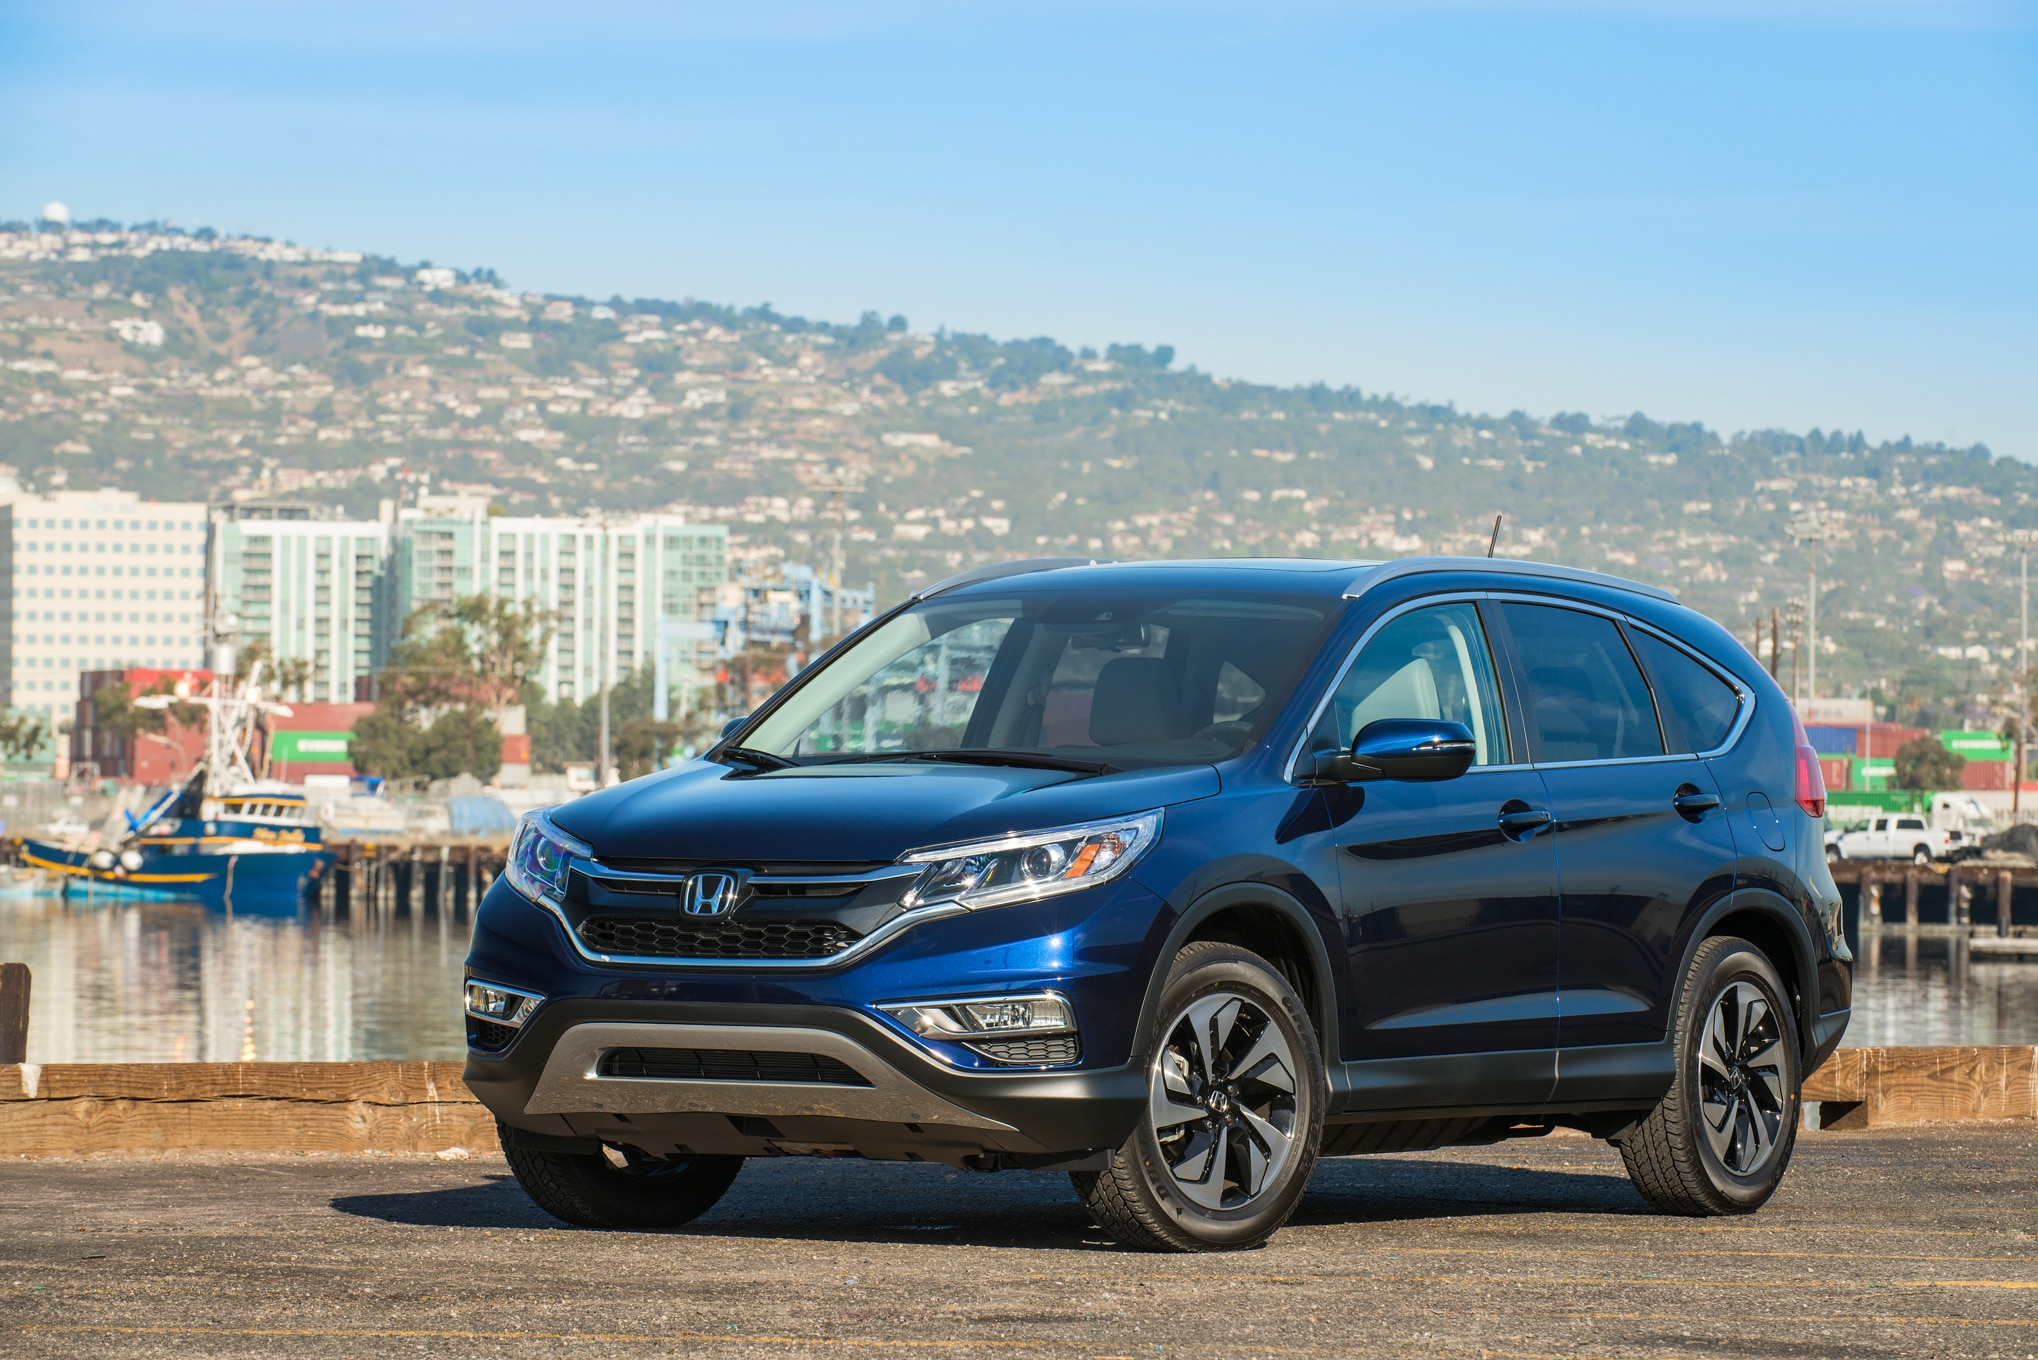 honda cr v stars in endless road commercial. Black Bedroom Furniture Sets. Home Design Ideas